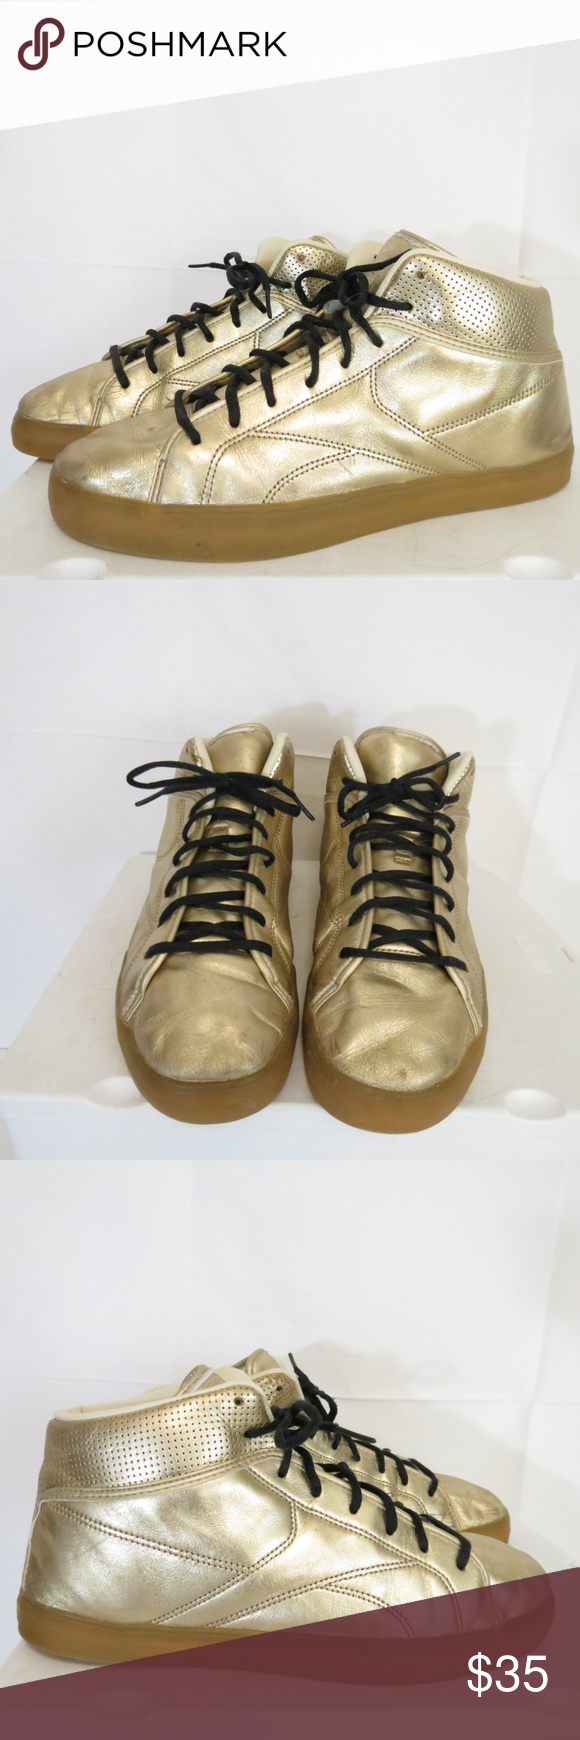 25a694f98e4f Reebok Men s 10.5 EU 44 T-Raww Gold High Top Reebok Men s 10.5 EU 44 T-Raww  Gold High Top Athletic Shoes(location ac cp) creasing please see photos  Reebok ...